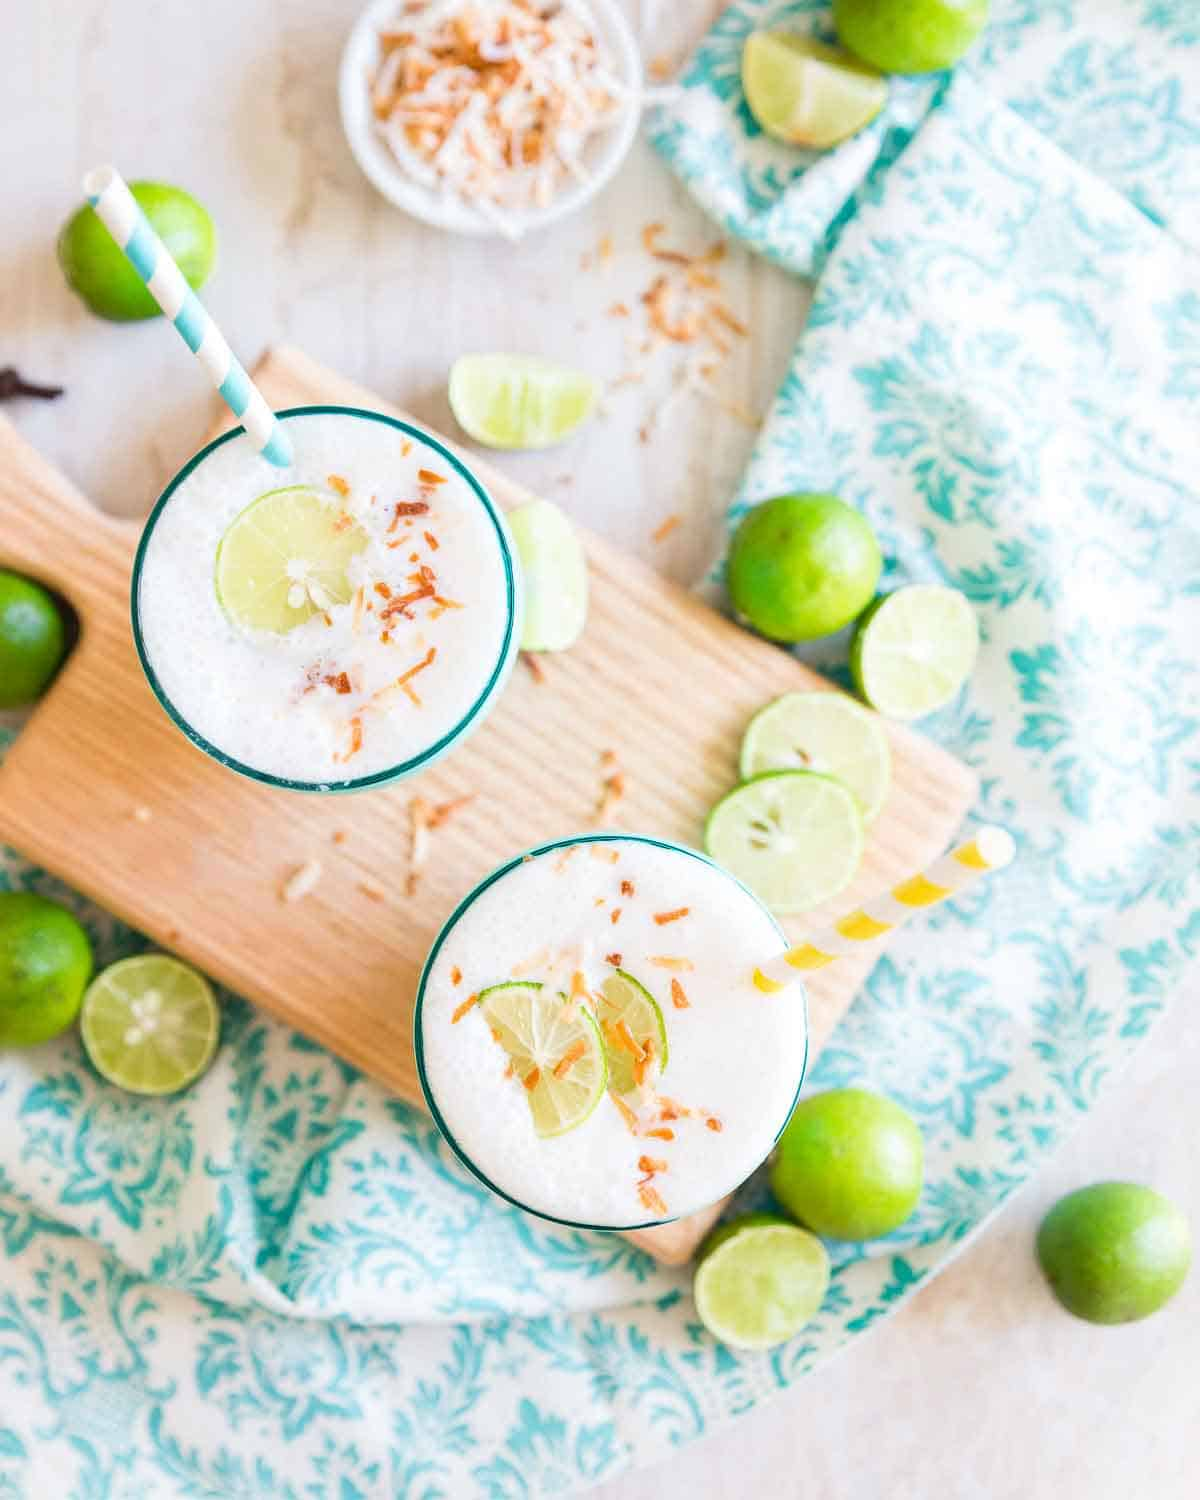 A refreshing lime and coconut smoothie recipe that tastes just like key lime pie.